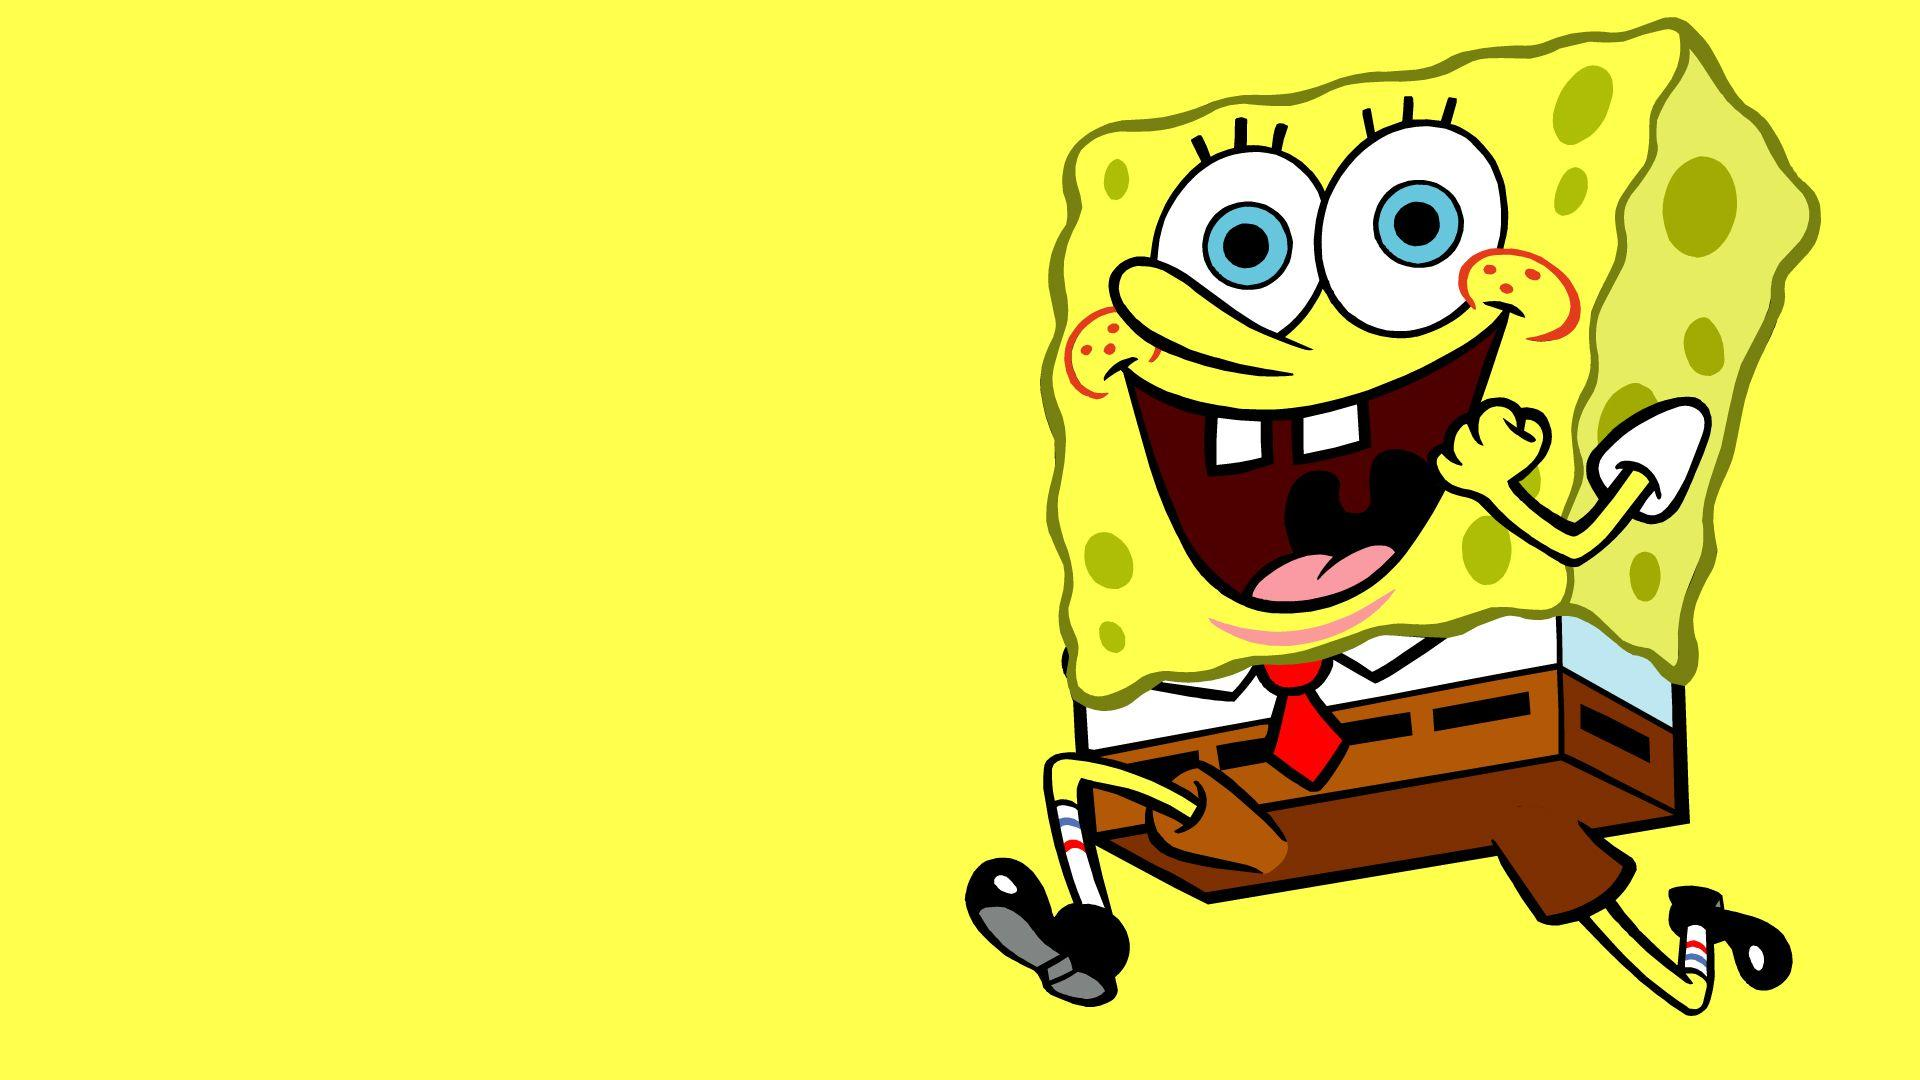 Cute Spongebob Wallpaper HD | HD Wallpapers, Backgrounds, Images ...